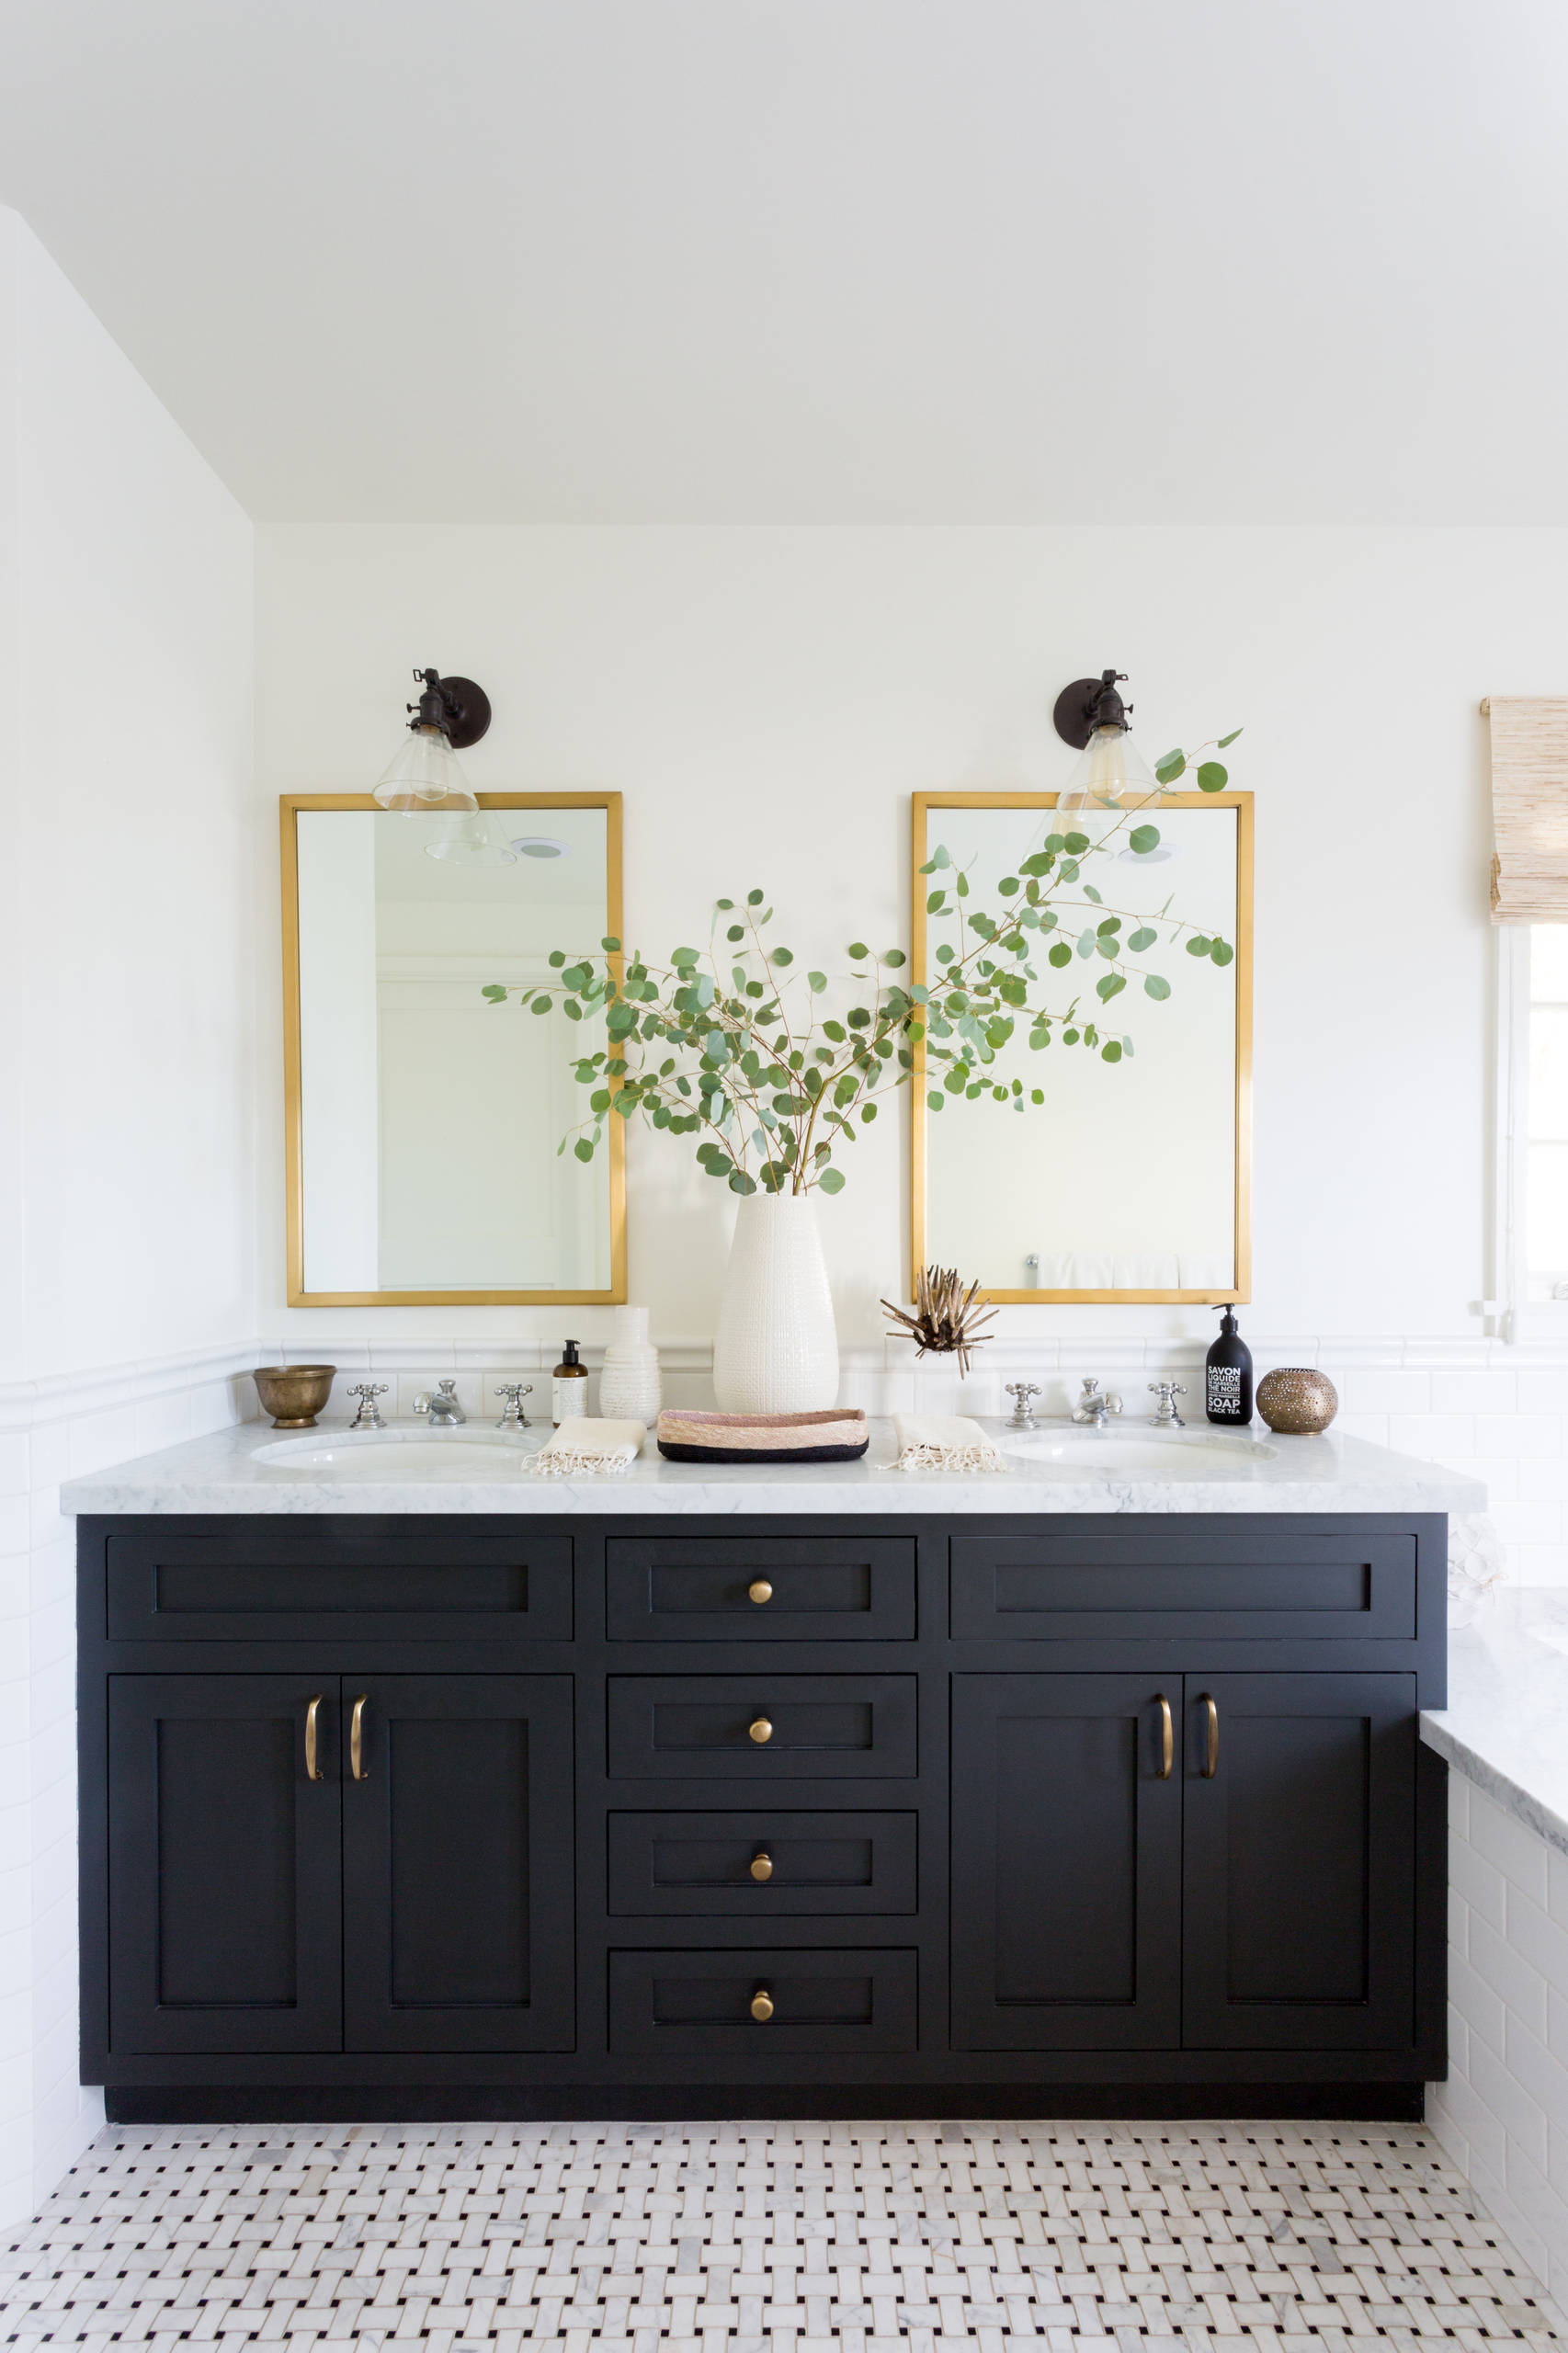 5 Beautiful Bathroom With Black Cabinets Pictures & Ideas